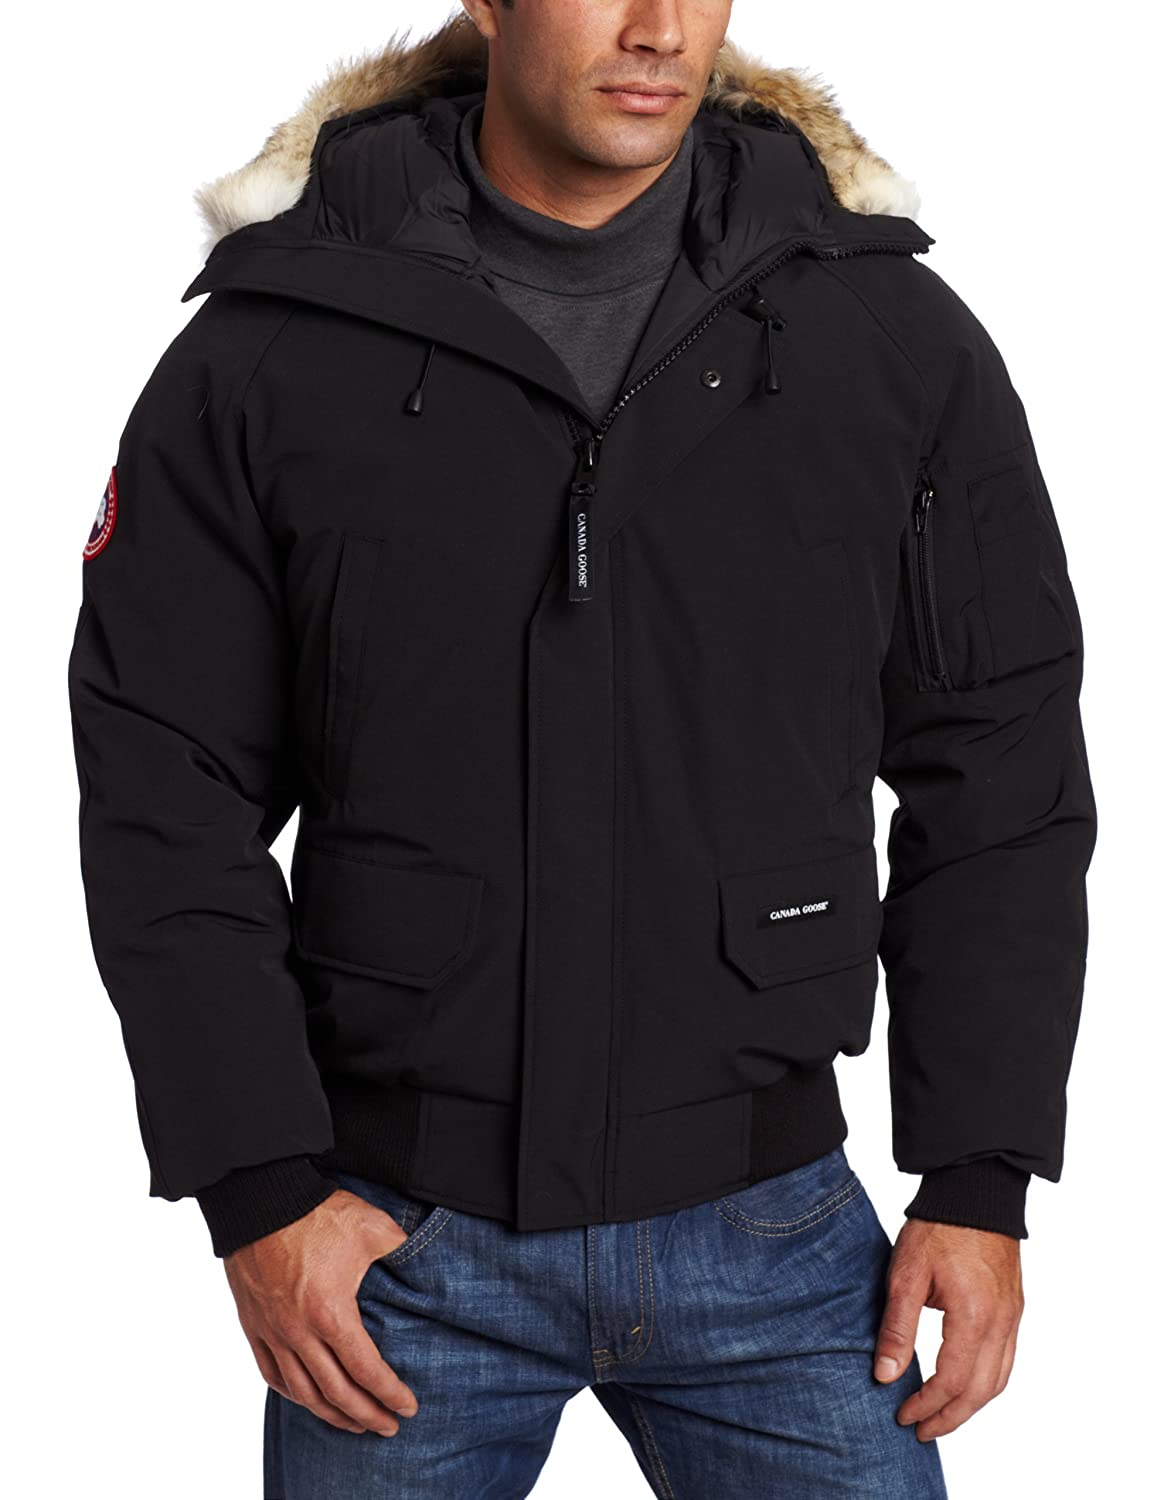 Canada Goose vest replica fake - Amazon.com: Canada Goose Men's Chilliwack Front-Zip Jacket with ...